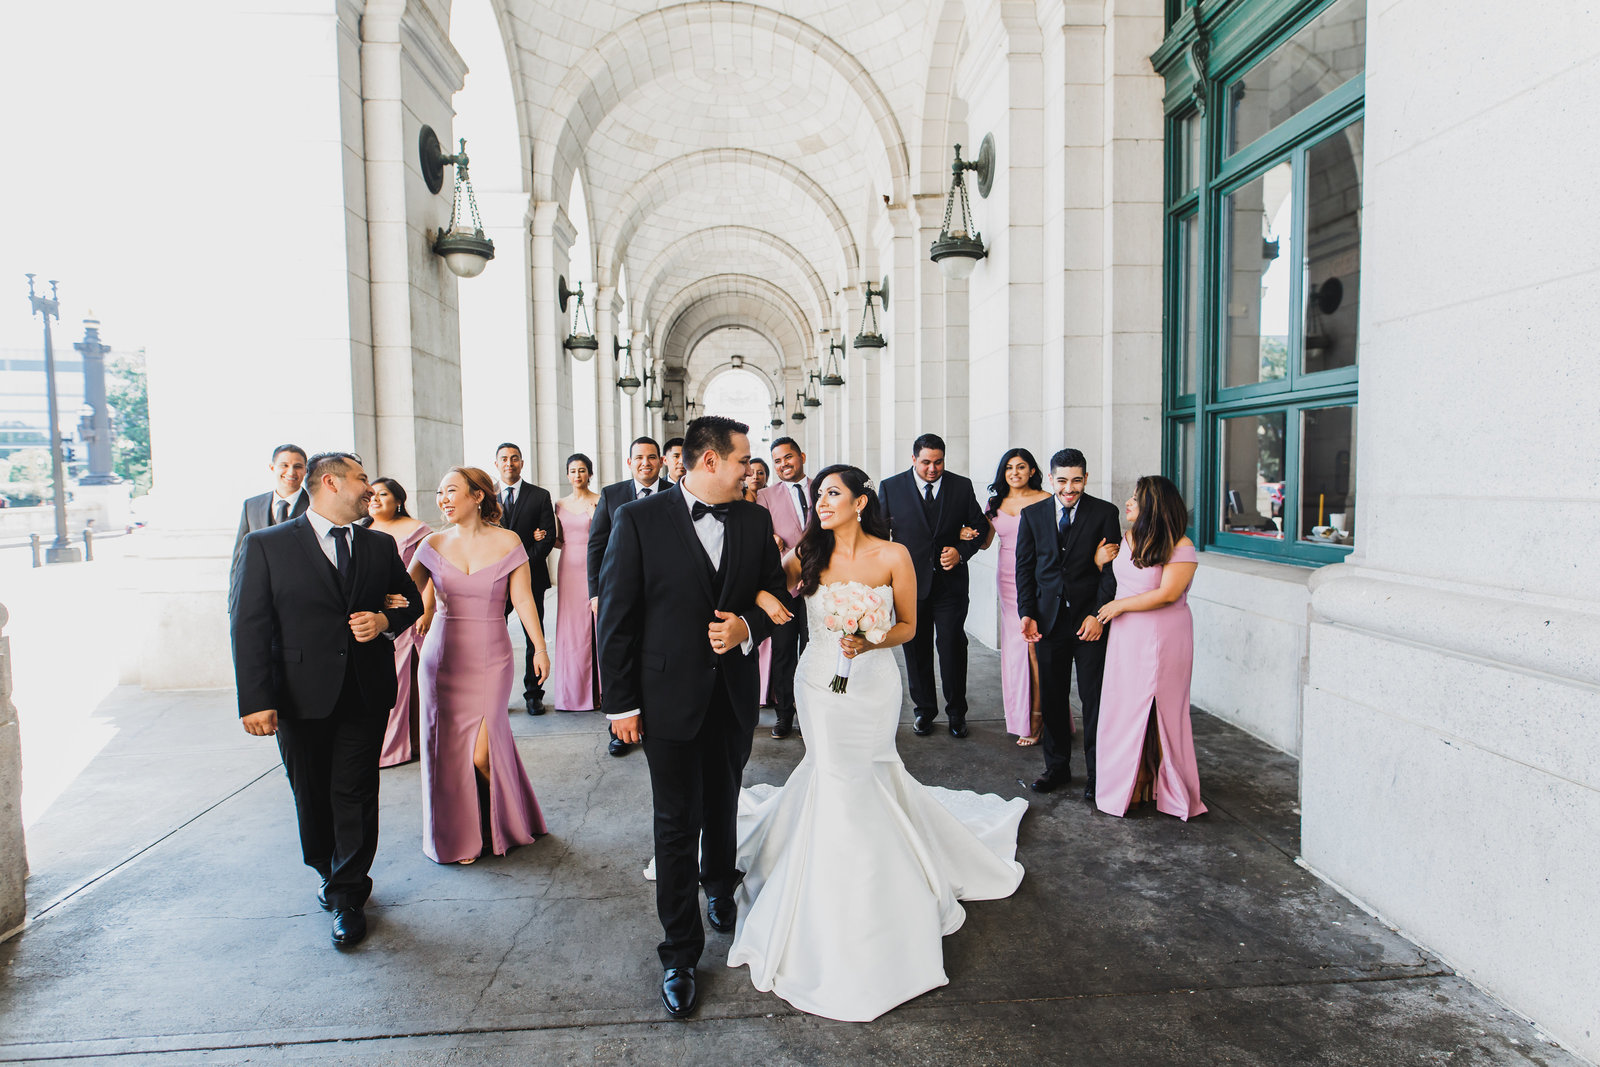 DC Wedding Photographer - M Harris Studios - Latin Wedding Photographer